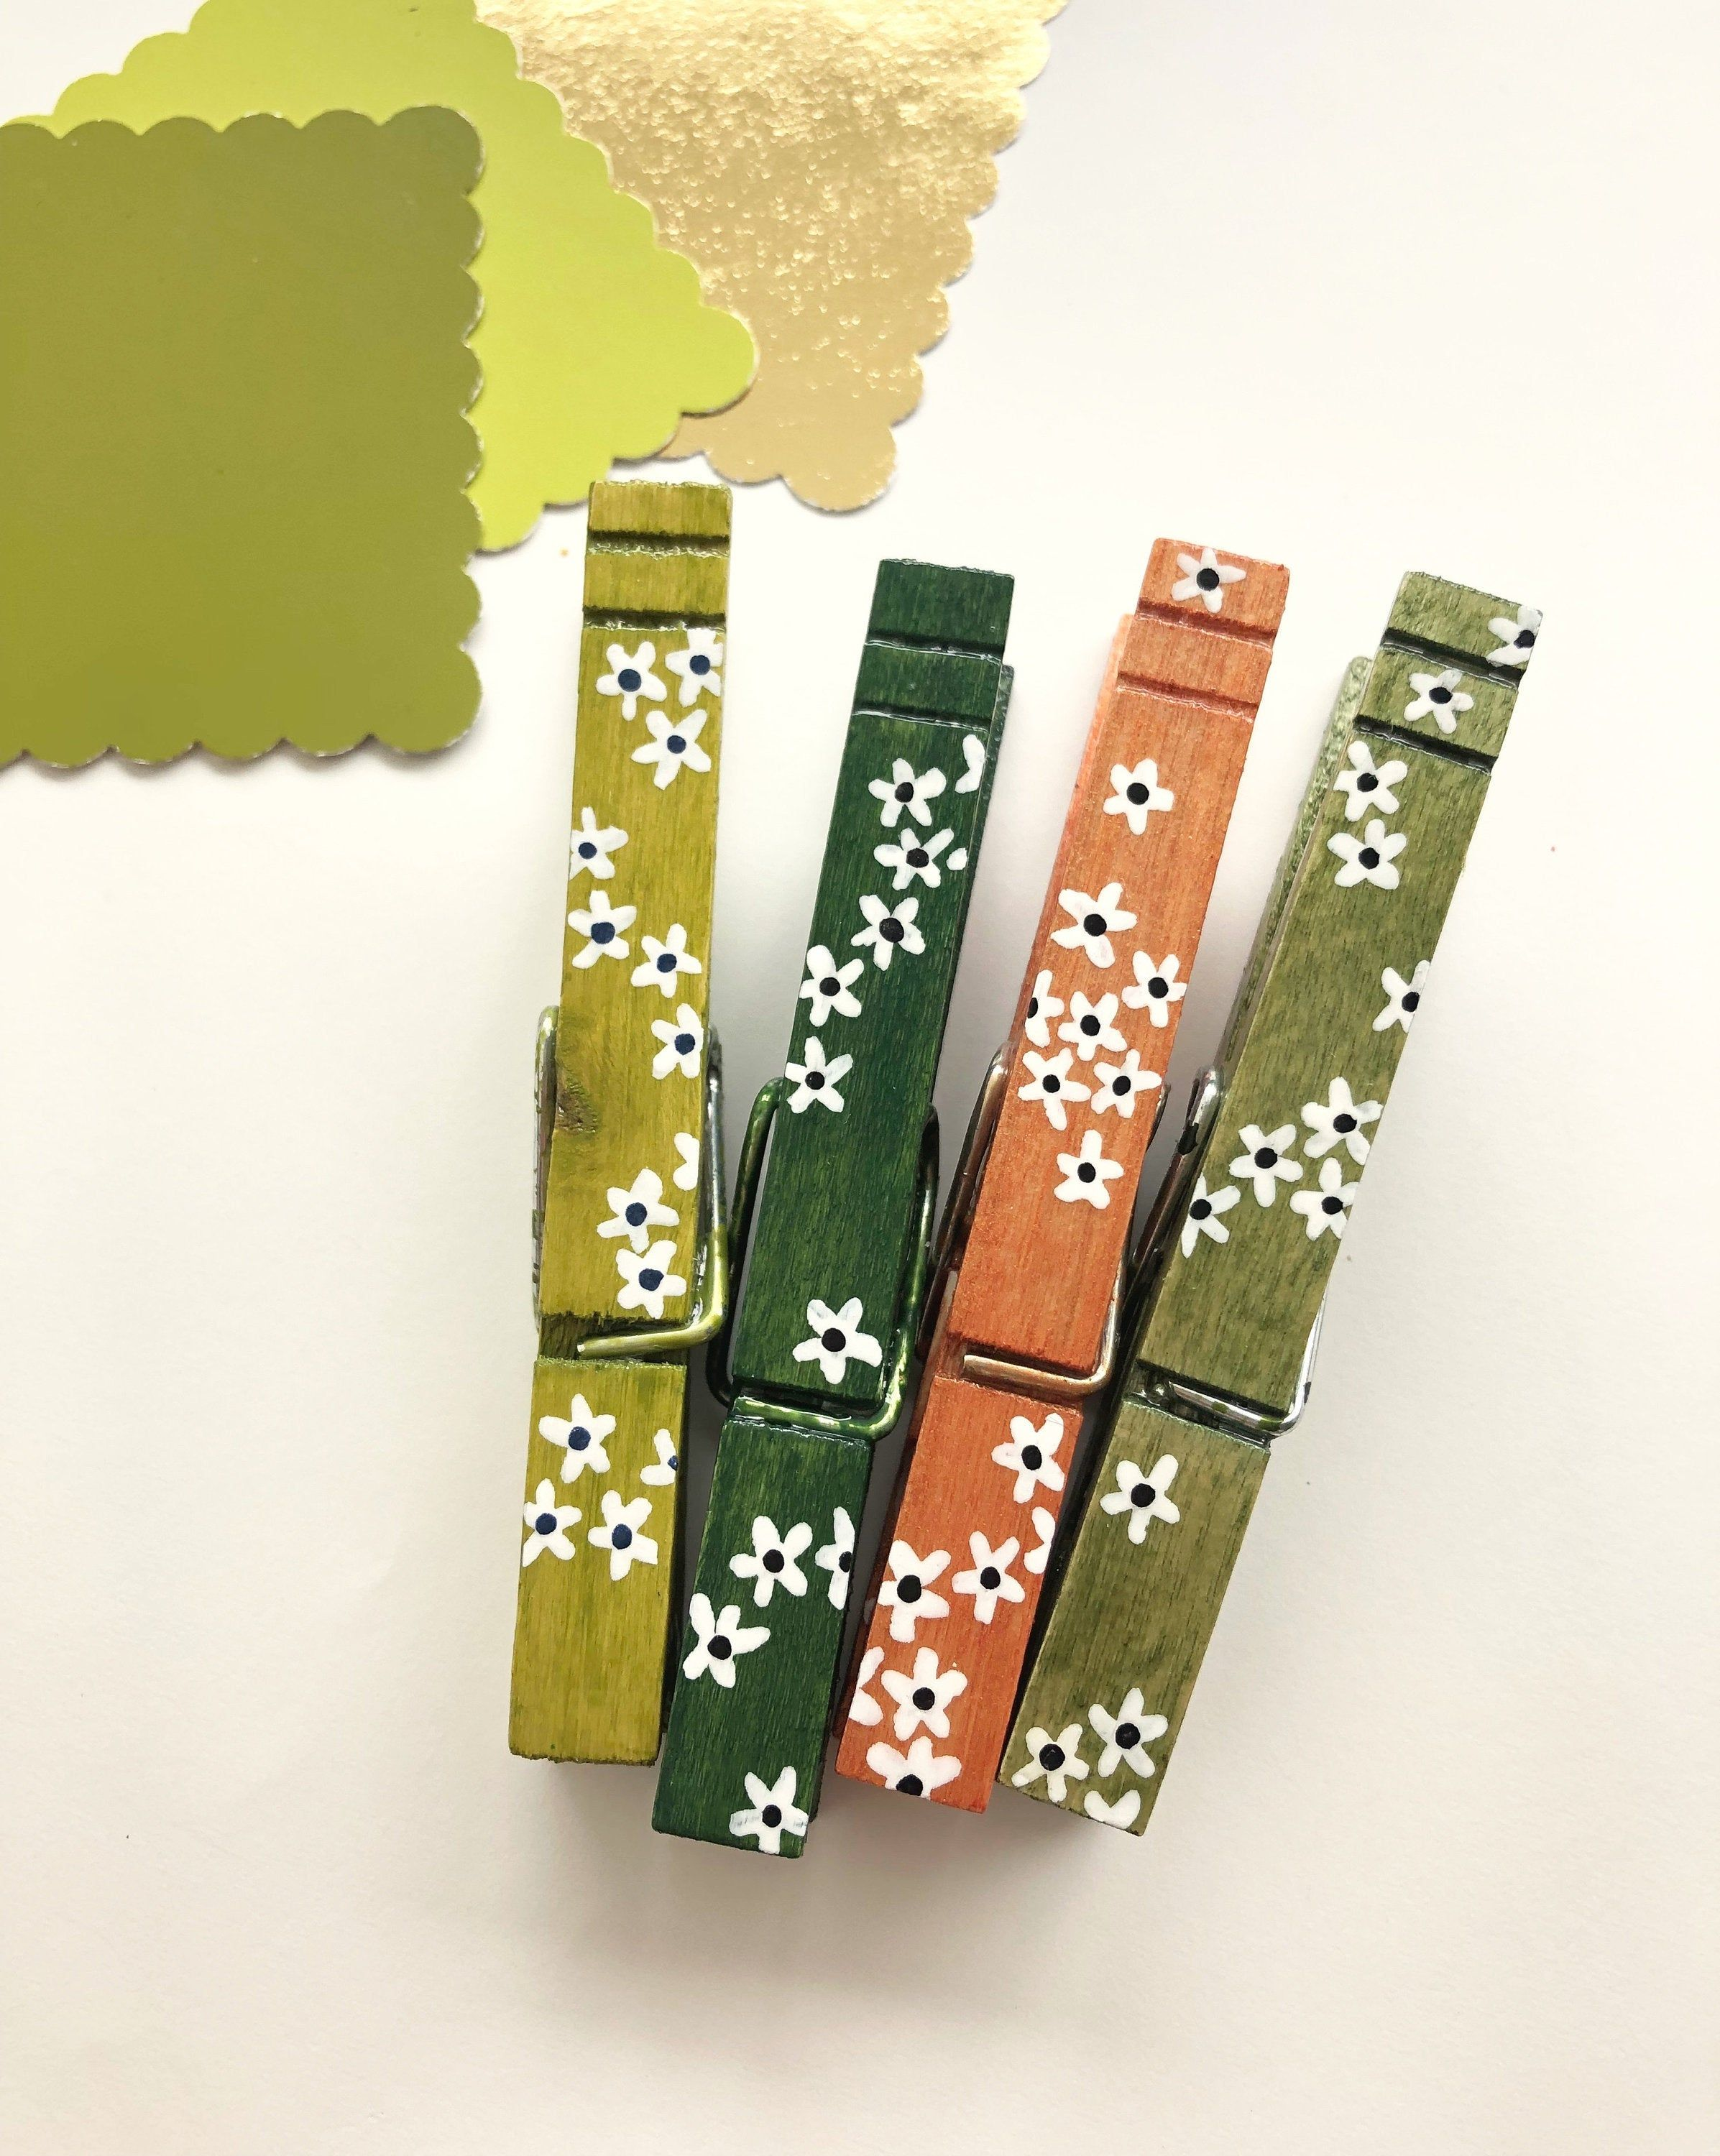 Flower Clothespins Floral Magnets Hand Painted Gift Topper Hostess Gift Chip Clips Small Gift Scandinavian Fa Floral Magnets Clothes Pins Christmas Clothespins